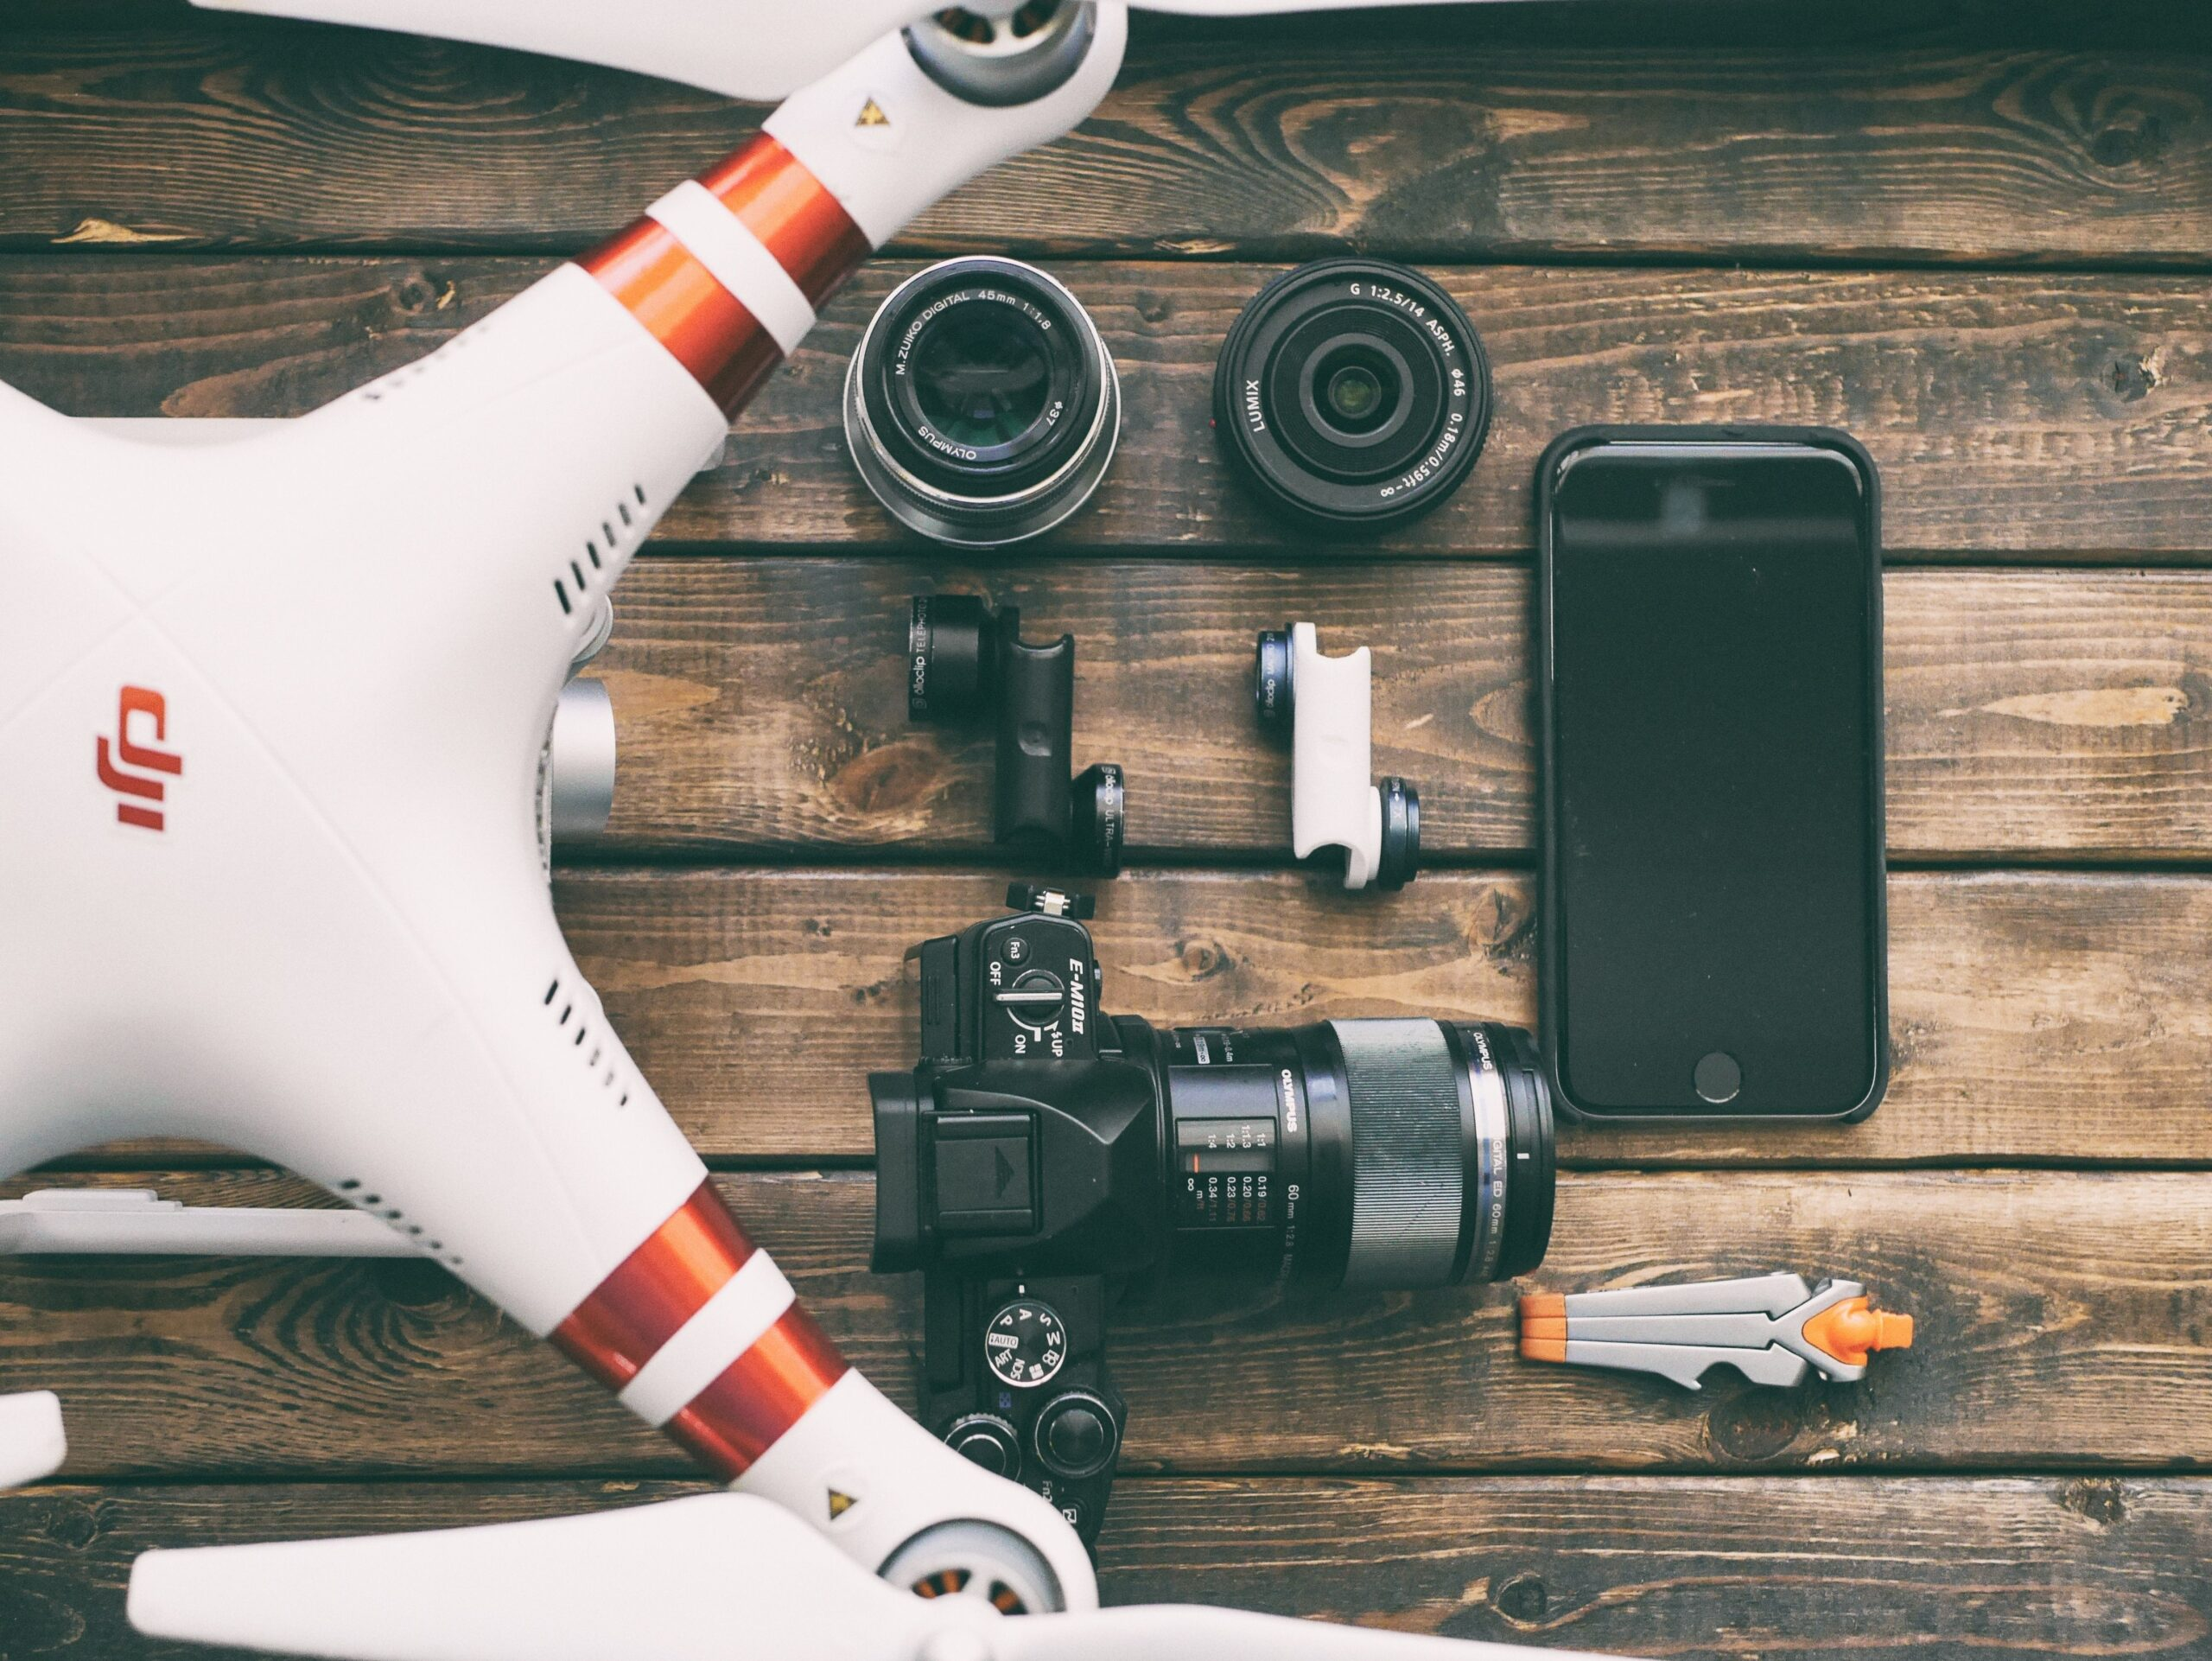 Advice for tech enthusiasts – gadget storing done right